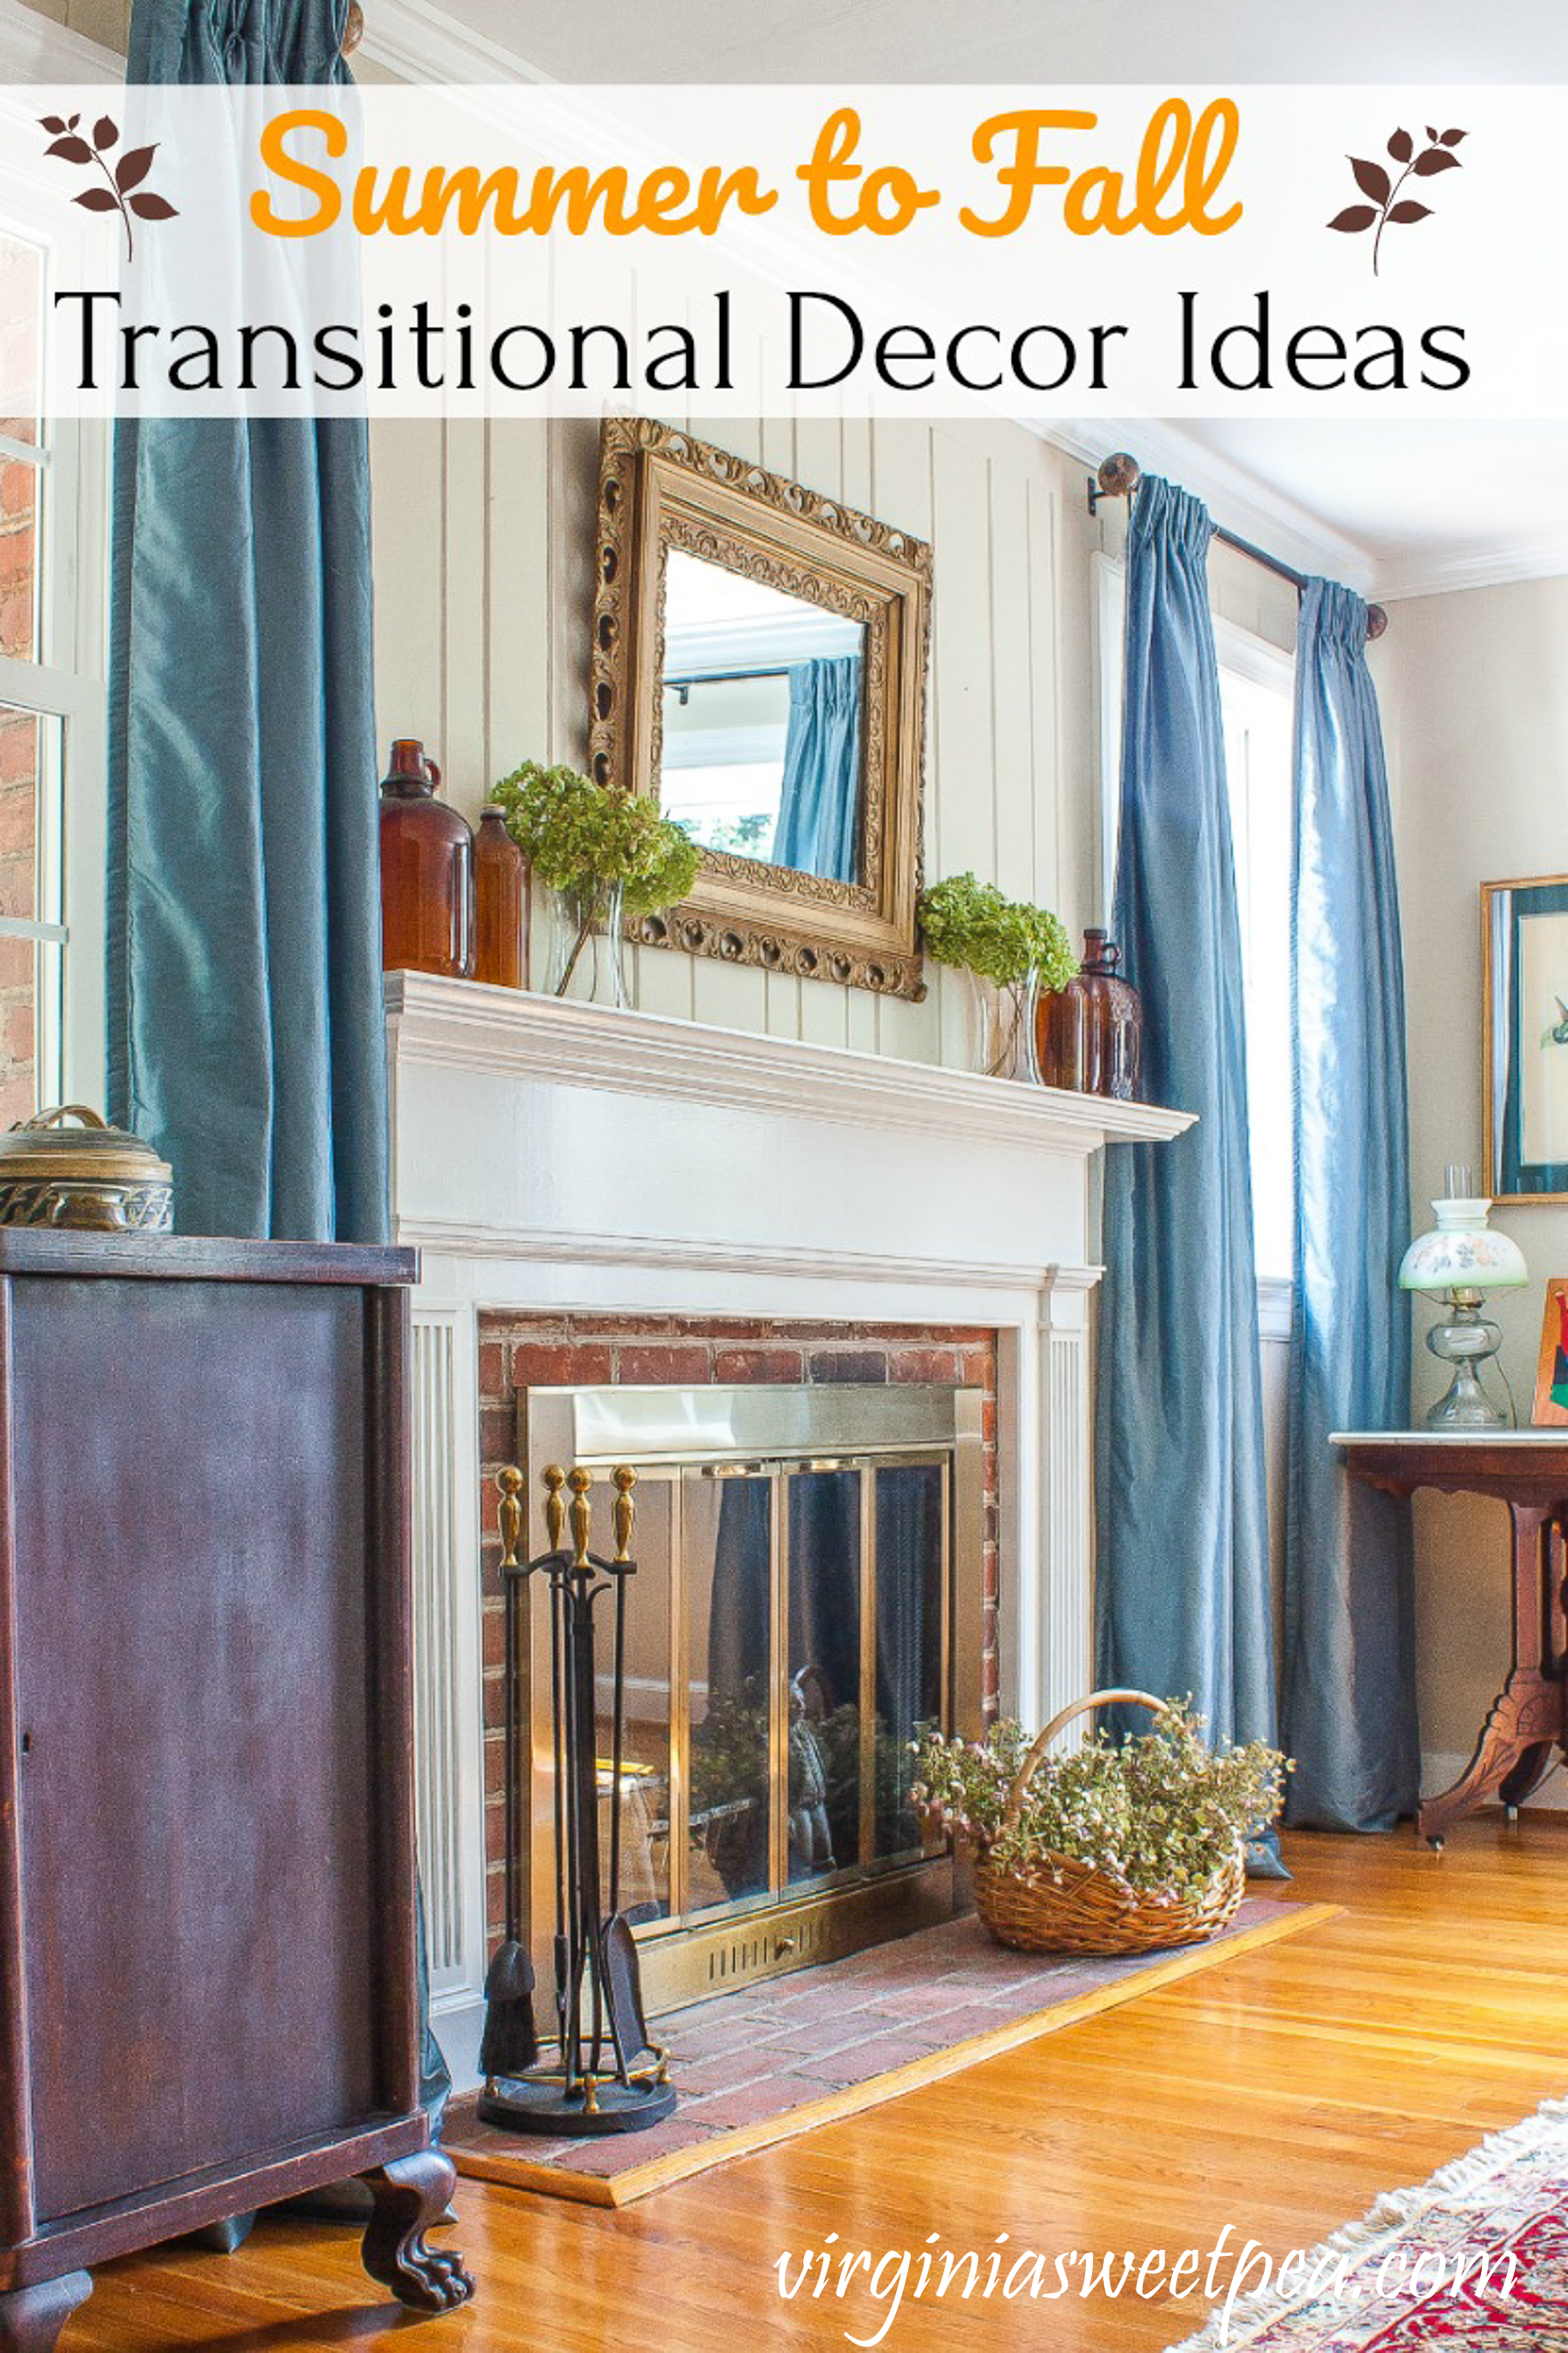 Ideas for transitioning decor from summer to fall.